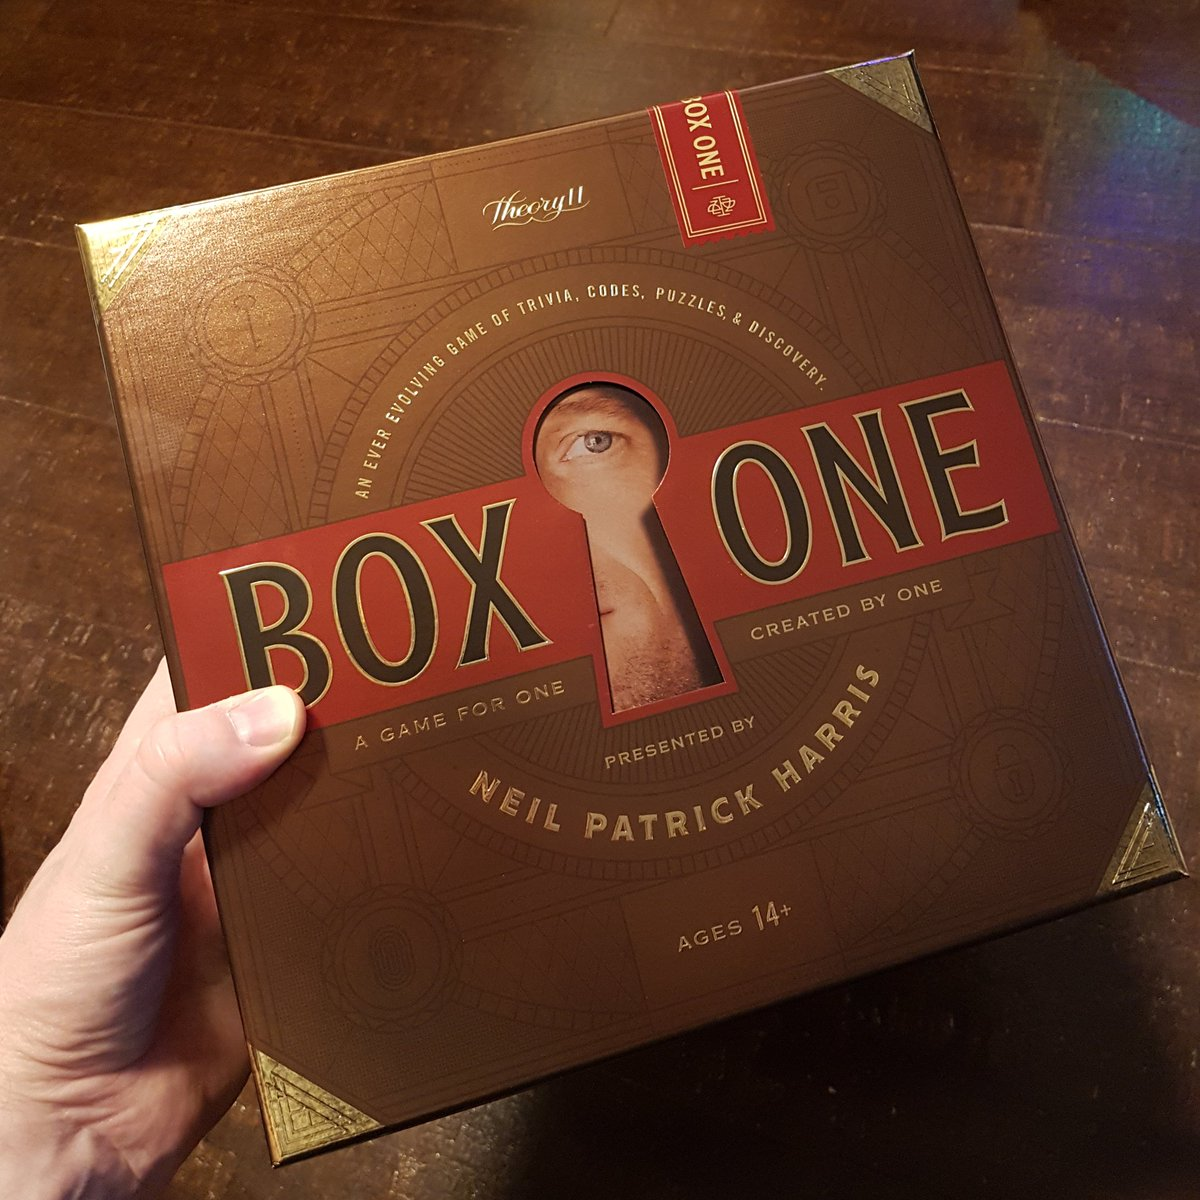 Late X-mas gift! @bitwhizzle conspired w her NYC cousins & managed to get the last copy of @ActuallyNPH's #BoxOne in the North East US & got it shipped to ME in 🇨🇦🇨🇦! Really excited! Better late than never... THANK YOU! cc @chrisramsay52